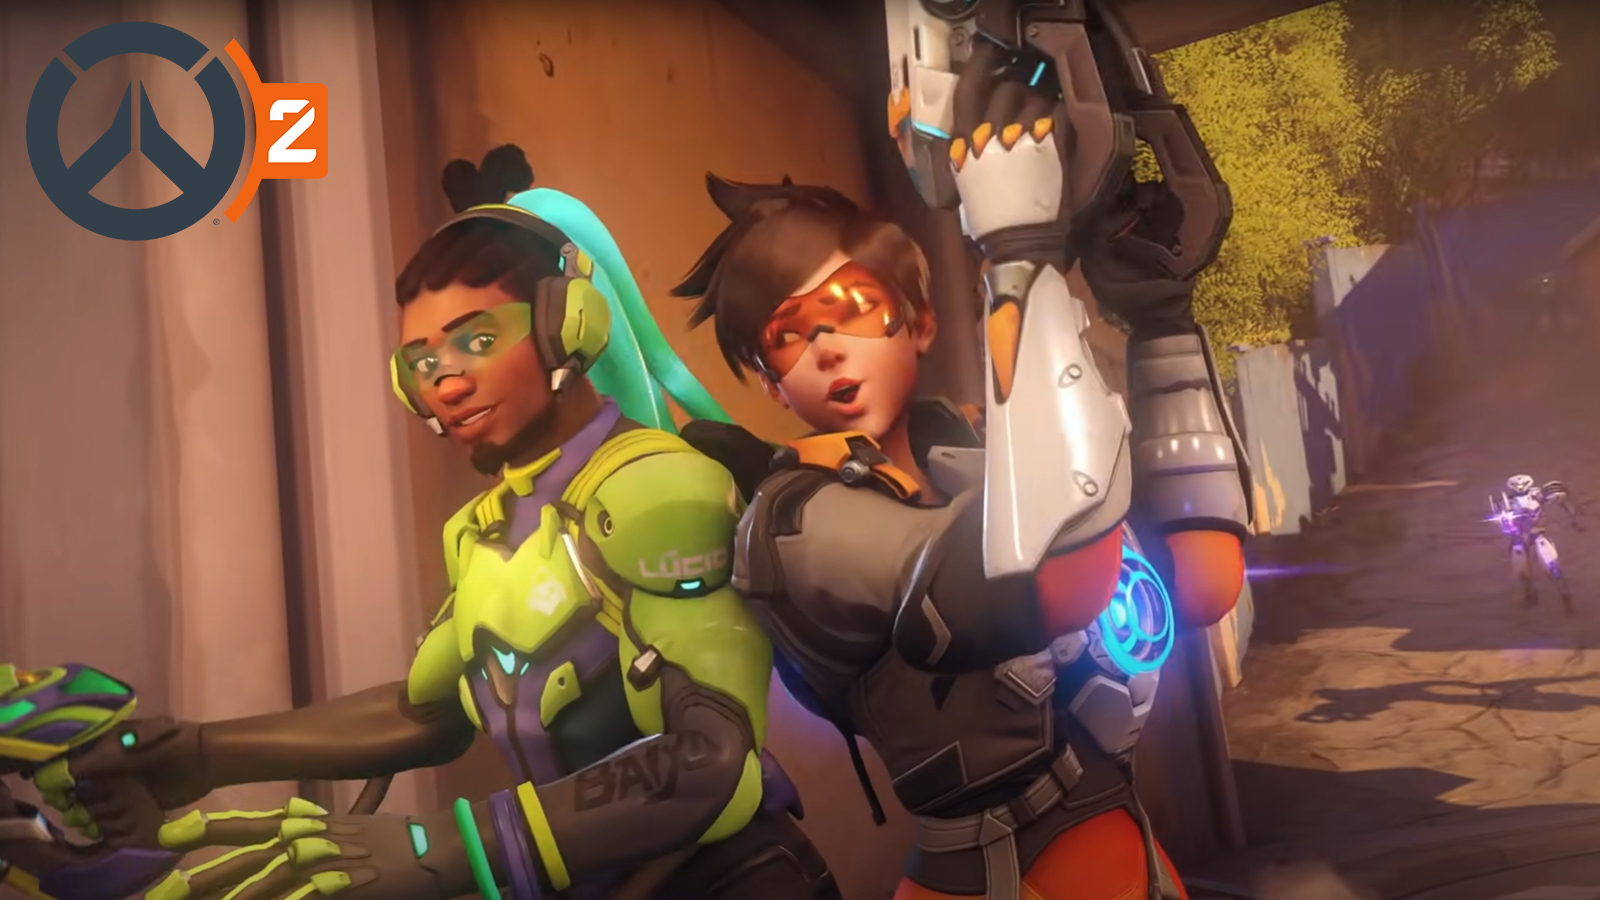 Overwatch 2 characters with their weapons